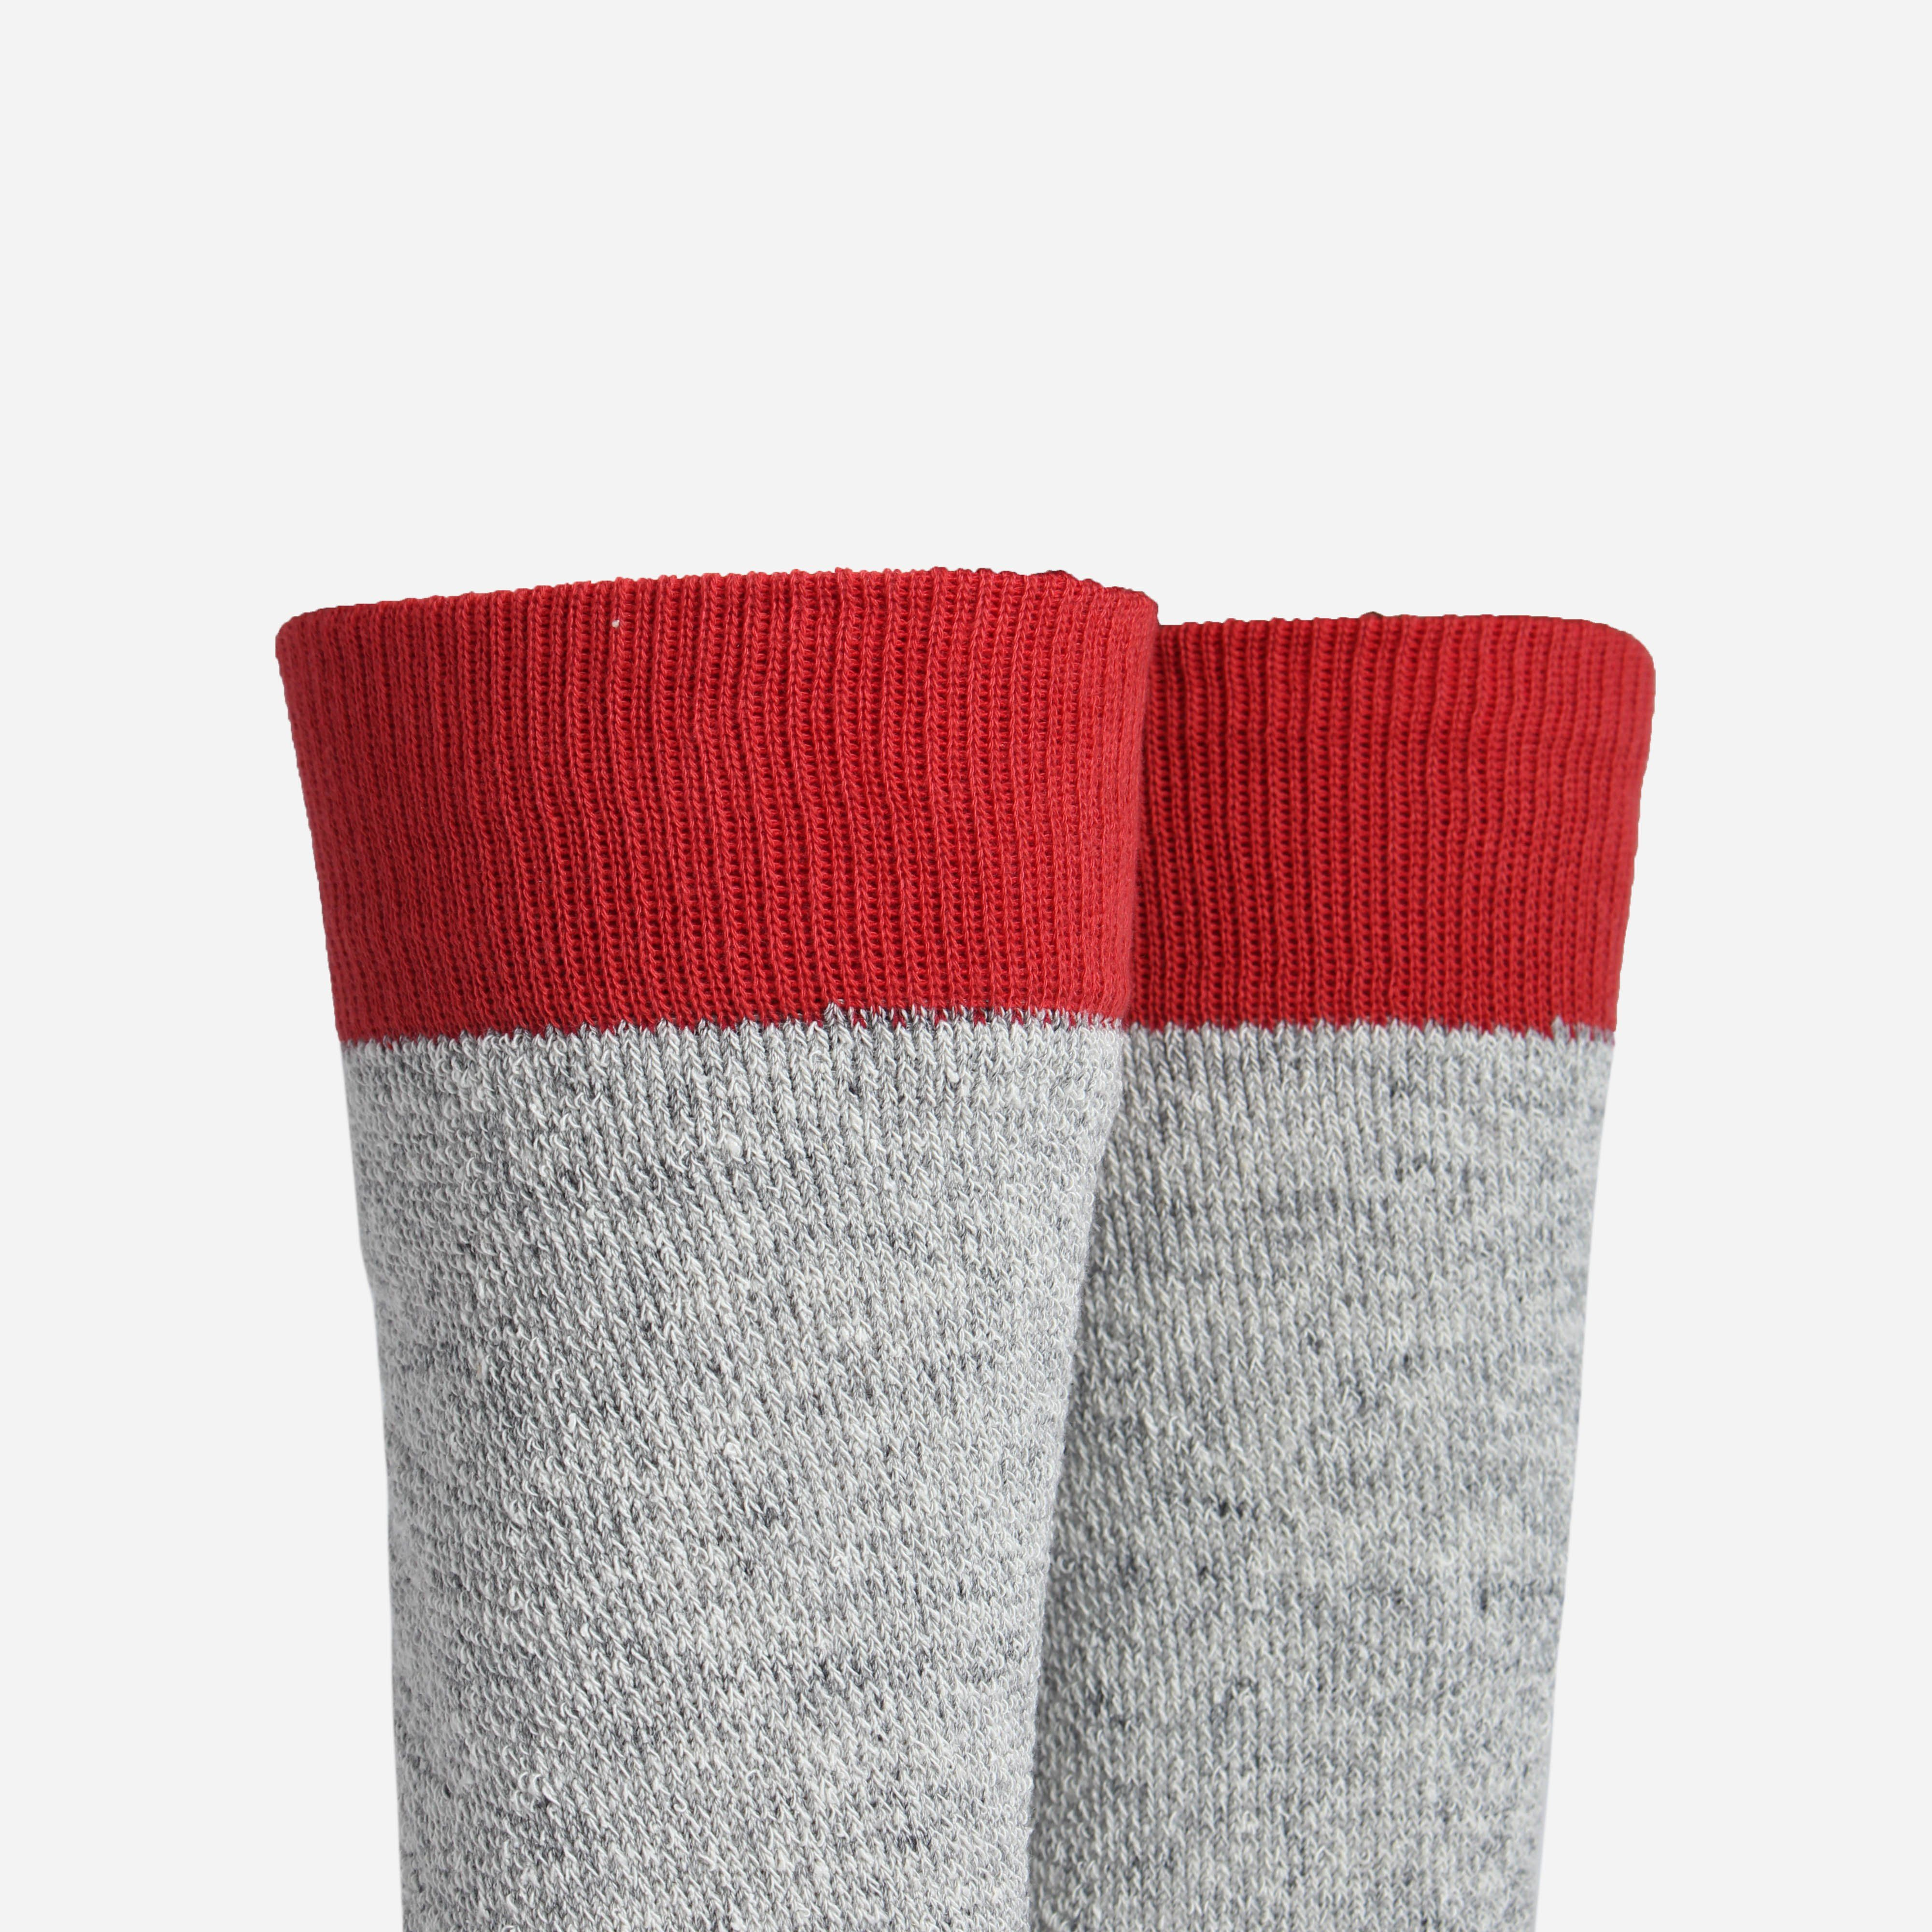 Ro To To Socks Double Face Socks